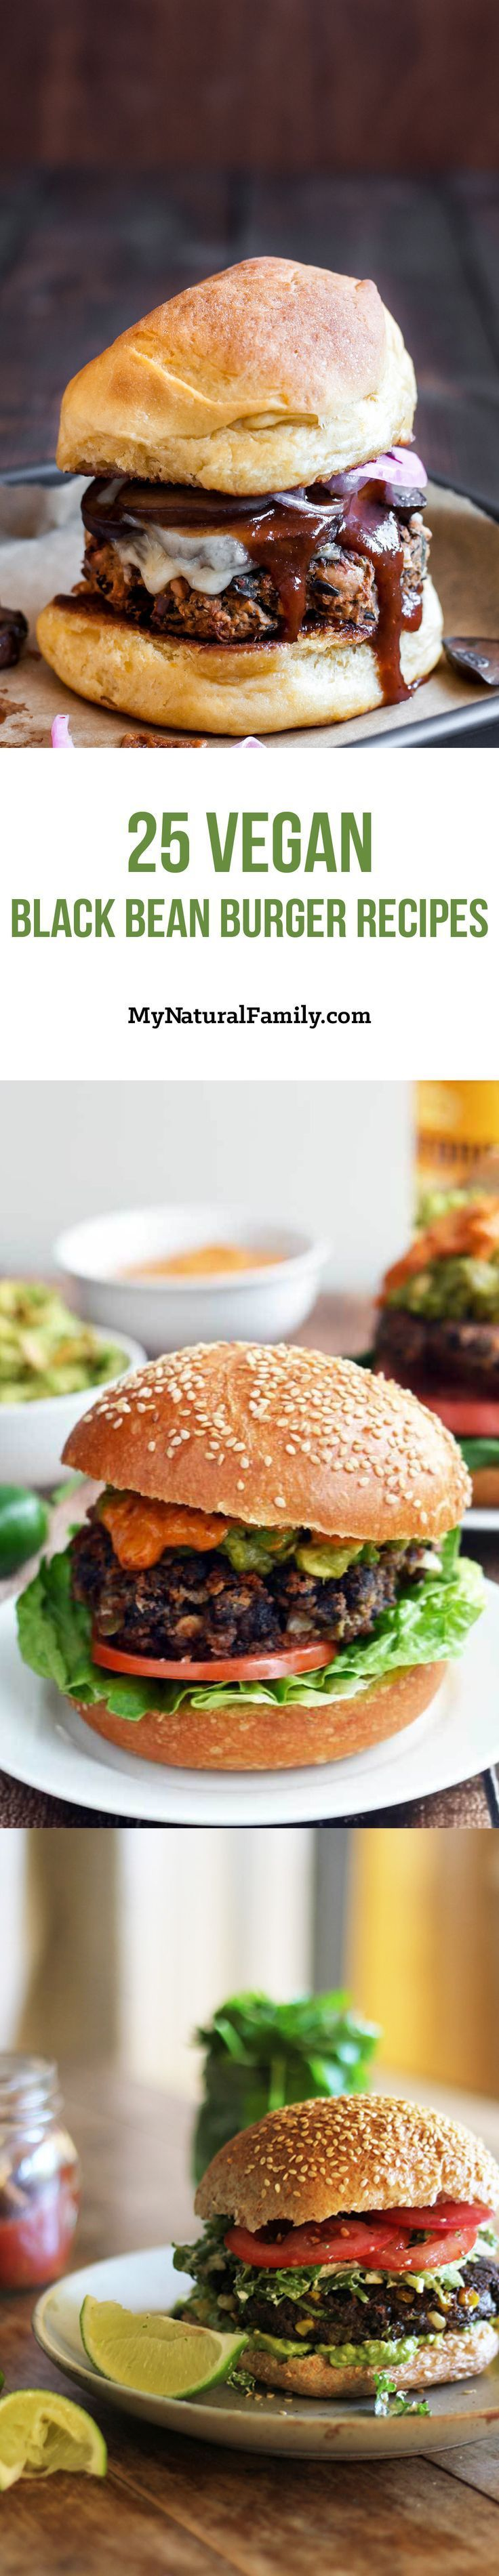 I love this huge selection of Vegan black bean burger recipes. There is so much variety and so many of them look so good. I want to try #22 today.